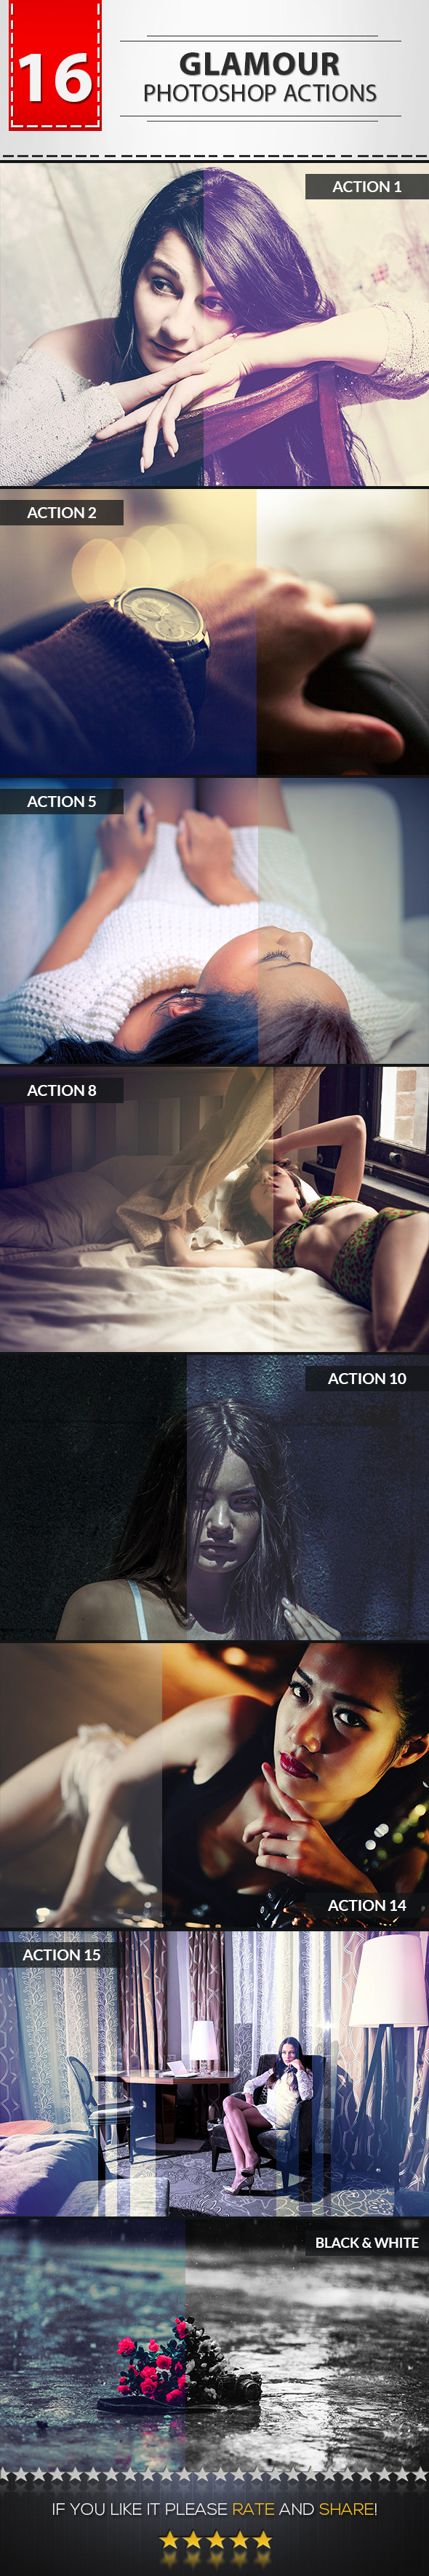 16 Glamour Photoshop Actions - Photo Effects Actions